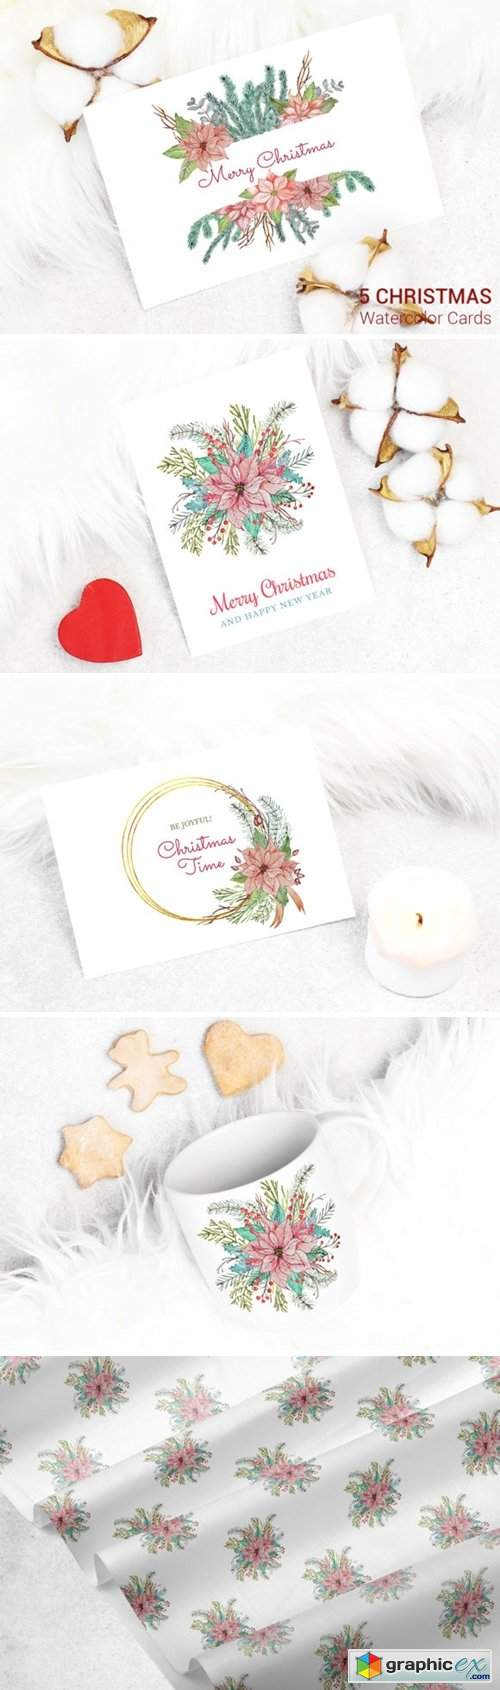 5 Christmas Cards. Watercolor Decoration